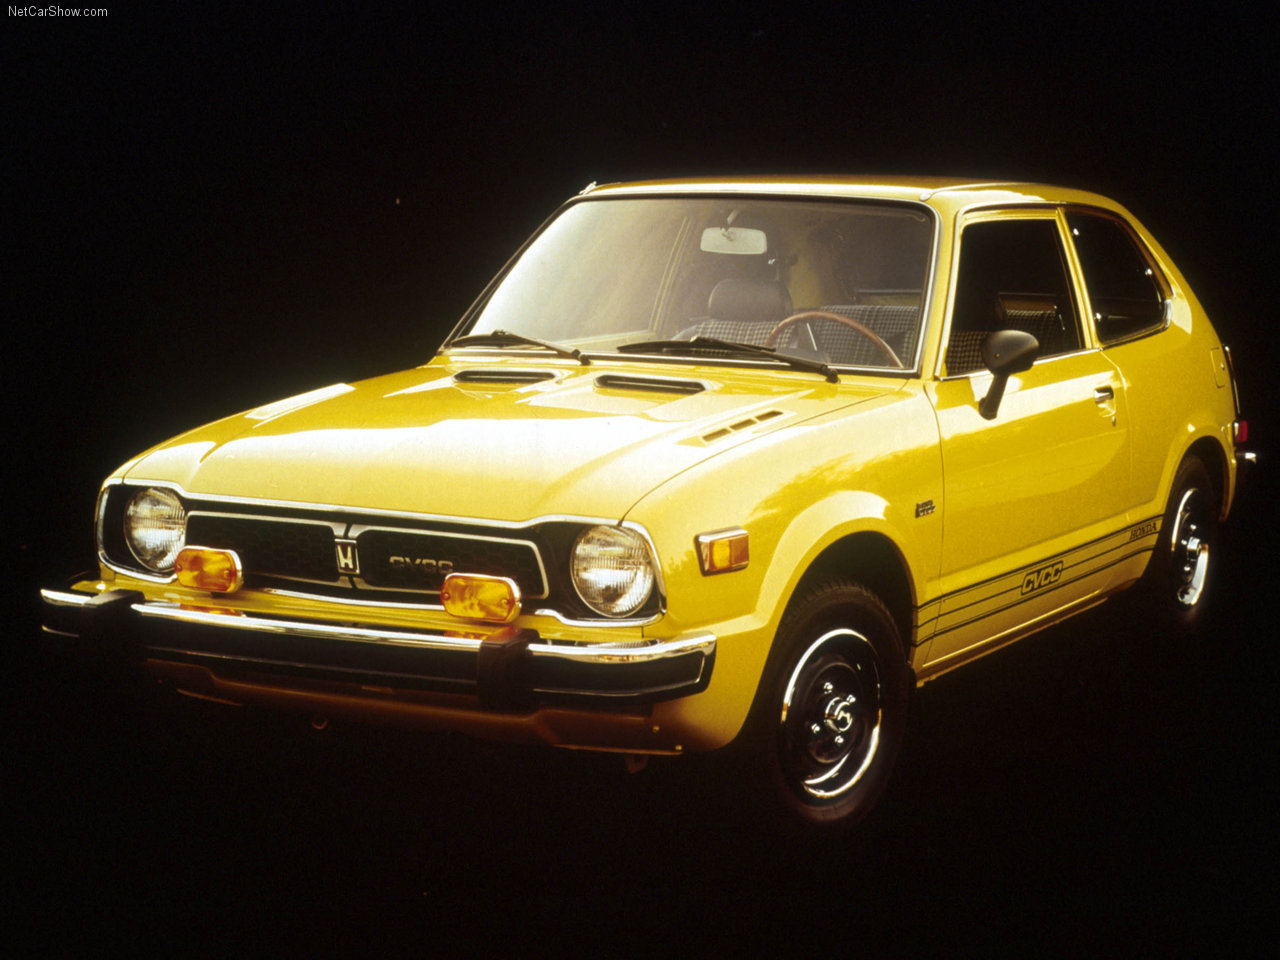 "1975 Honda Civic CVCC Honda began selling the 1169 cc (70 in) transversely mounted inline four-cylinder Civic for about US$2,200. The car produced roughly 50 hp and included power front disc brakes, vinyl seating, reclining bucket seats, and a woodgrain-accented dashboard. The hatchback version added a fold-down rear seat, an AM radio, and cloth upholstery. The car had front and rear independent suspension. A four-speed manual transmission was standard. Options for the Civic were kept to a minimum, consisting of air conditioning, an automatic transmission called the Hondamatic, radial tires, and a rear wiper for the hatchback. The car could achieve 40 mpg-US on the highway, and with a small 86.6 inch wheelbase and 139.8 inch overall length, the vehicle weighed only 1,500 pounds. In the USA, the advertising campaign used to introduce the Civic was, ""Honda, we make it simple."" The Civic outperformed American competitors such as the Chevrolet Vega and Ford Pinto. When the 1973 oil crisis struck, many Americans turned to economy cars. Reviews of American economy car quality were poor and getting worse due to spiraling costs for manufacturers. Japanese culture had a long-standing tradition of demanding high-quality economy cars, and the growing American desire in the 1970s for well-made cars that had good fuel mileage benefited the standing of Honda, Toyota, and Datsun in the lucrative U.S. market. For 1974, the Civic's engine size grew slightly, to 1237 cc and power went up to 52 hp. In order to meet the new 5 mph bumper impact standard, the Civic's bumpers grew 7.1 inches, increasing overall length to 146.9 inches. The CVCC (Compound Vortex Controlled Combustion) engine debuted in 1975 and was offered alongside the standard Civic engine. The optional 53 hp CVCC engine displaced 1488 cc and had a head design that promoted cleaner, more efficient combustion. The CVCC design eliminated the need for catalytic converters or unleaded fuel to meet changing emissions standards, unlike nearly every other U.S. market car. Due to California's stricter emissions standards, only the CVCC powered Civic was available in that state. A five-speed manual transmission became available this year, as did a Civic station wagon (only with the CVCC engine), which had a wheelbase of 89.9 inches and an overall length of 160 inches. Civic sales also increased and topped 100,000 units for this year. The first generation Honda Civics were notorious for rusting in less than three years from purchase where salt was used in the winter. The U.S. importer, American Honda Motor Company, signed a final consent decree with the Federal Trade Commission that provided owners of 1975-1978 Civics with rusted fenders the right to receive replacements or cash reimbursements. In the end, almost 1 million Honda owners were notified that their fenders could be repaired or replaced by the automaker at no charge. About 10% of all Hondas sold were to be inspected by a dealer, and the automaker had 180 days to replace front fenders and supporting parts that showed rust within the first three years of use. The Hondas were so vulnerable to corrosion that the National Highway Traffic Safety Administration (NHTSA) also issued a safety recall . This was because the car's lateral suspension arms, front crossbeam, and strut coil spring lower supports could weaken with exposure to salt. A total of 936,774 vehicles built between 9-1-1972 and 8-1-1979 were subject to extensive repairs since Honda had to replace the suspension components, or the automaker bought back entire cars with serious body corrosion. At the time, Honda's rust recall was the largest safety action among all the brands imported into the U.S. Civics became known for their ""typical Honda rust"" in the used car market."